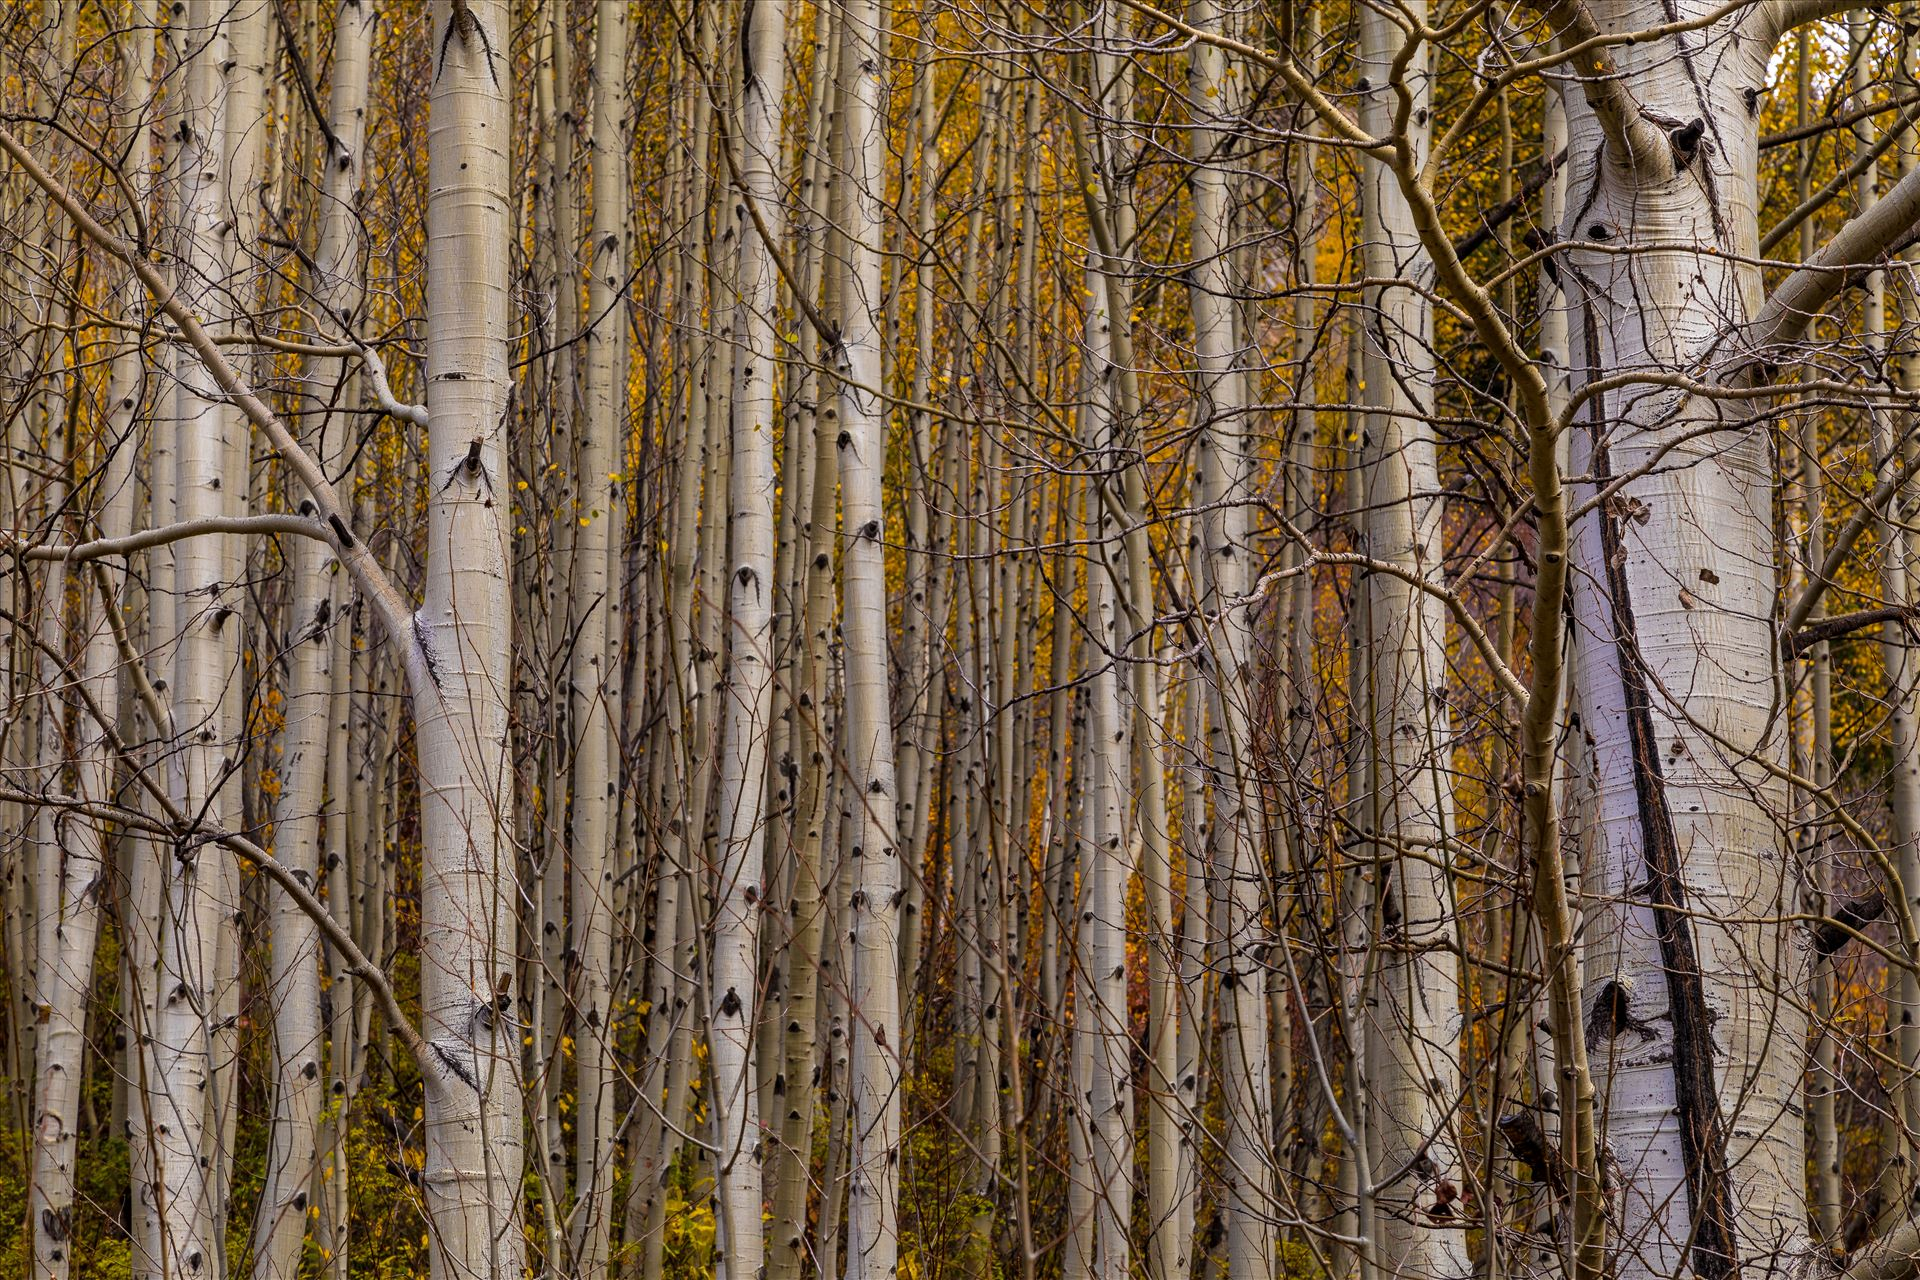 Simple Aspens - A dense grove of aspens near Marble, Colorado, in the fall. by Scott Smith Photos